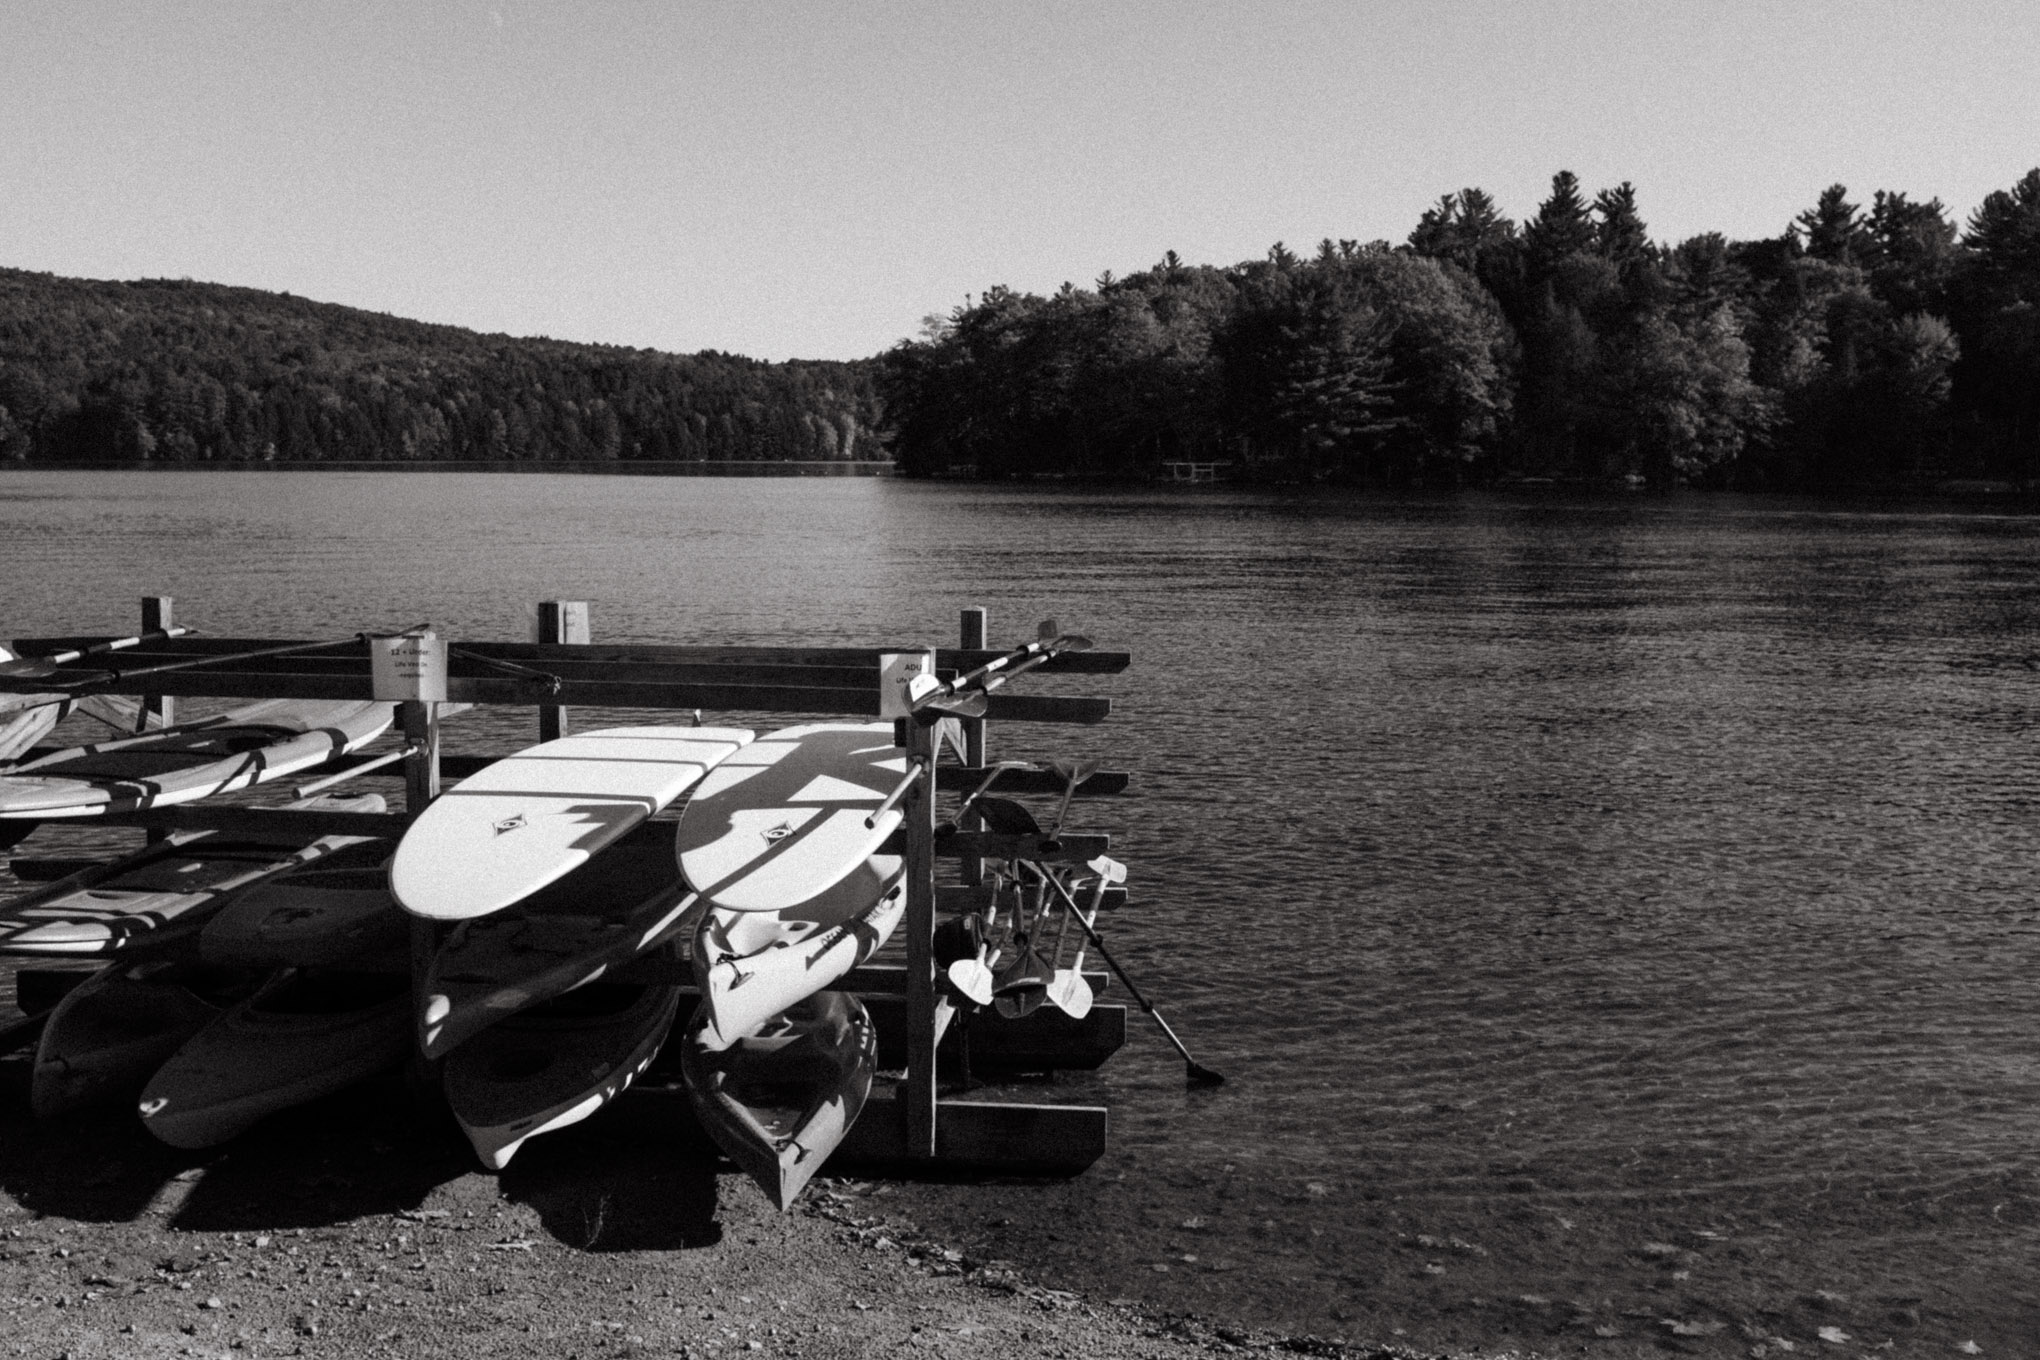 Black and white photo of a lake boarded by trees. Paddle boards sit on a rack in the foreground.